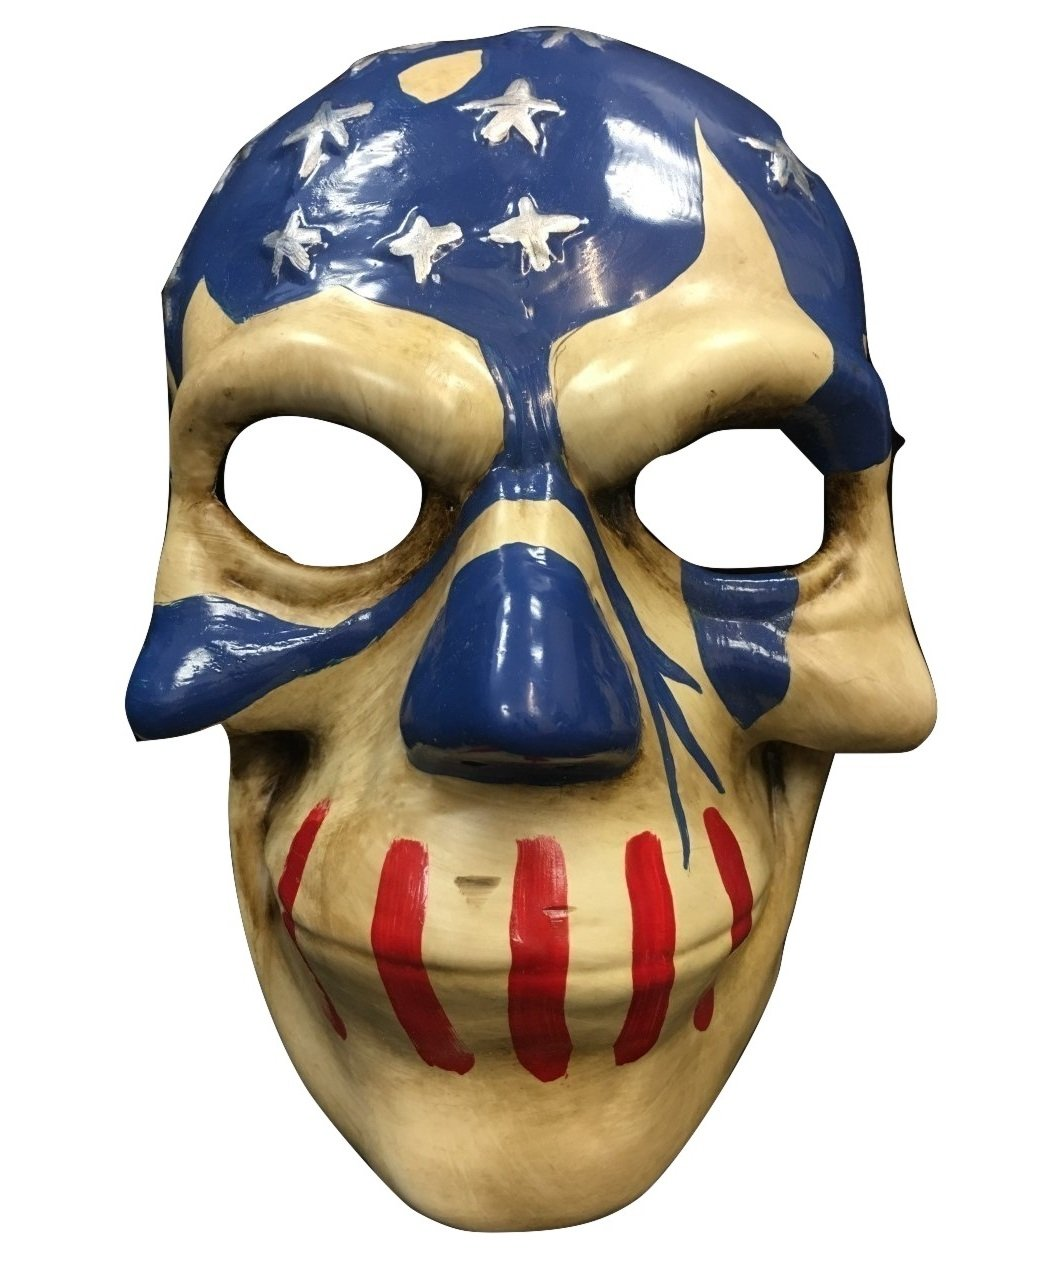 The Purge 'Usa' Election Year Mask by Wrestling